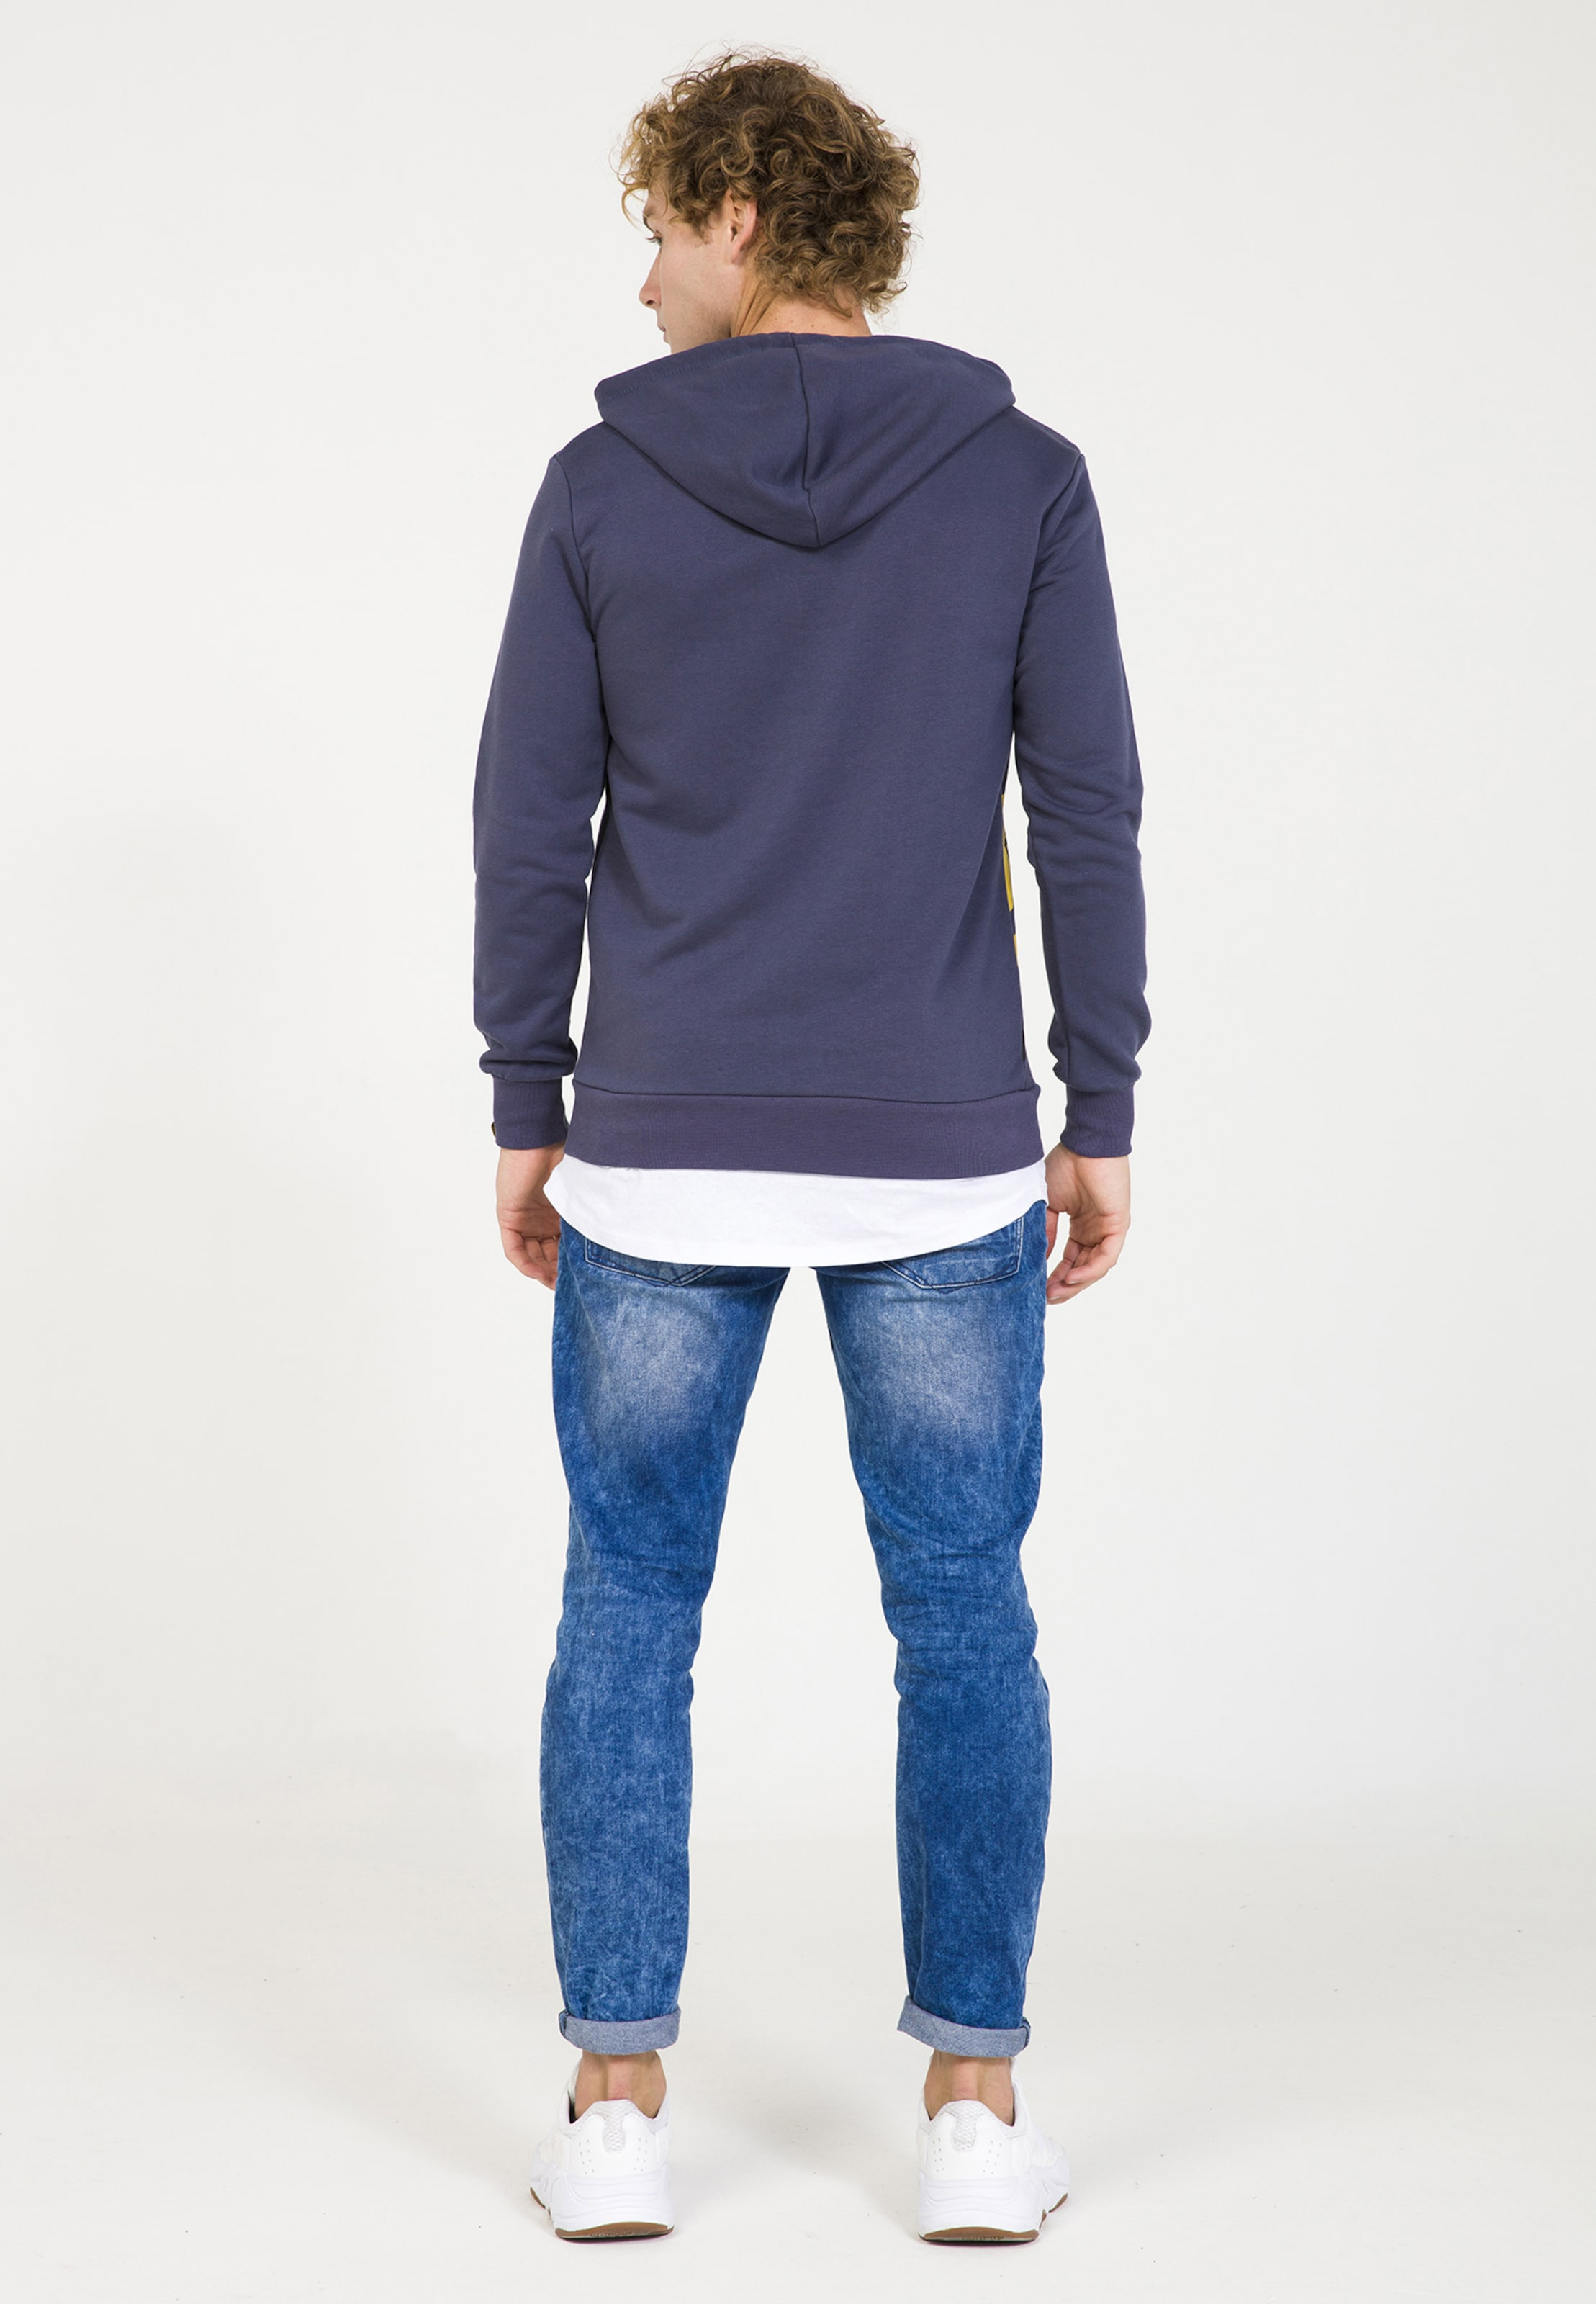 Plus Kapuzenpullover GelbDunkellila Eighteen Plus In QeBrdCxWo